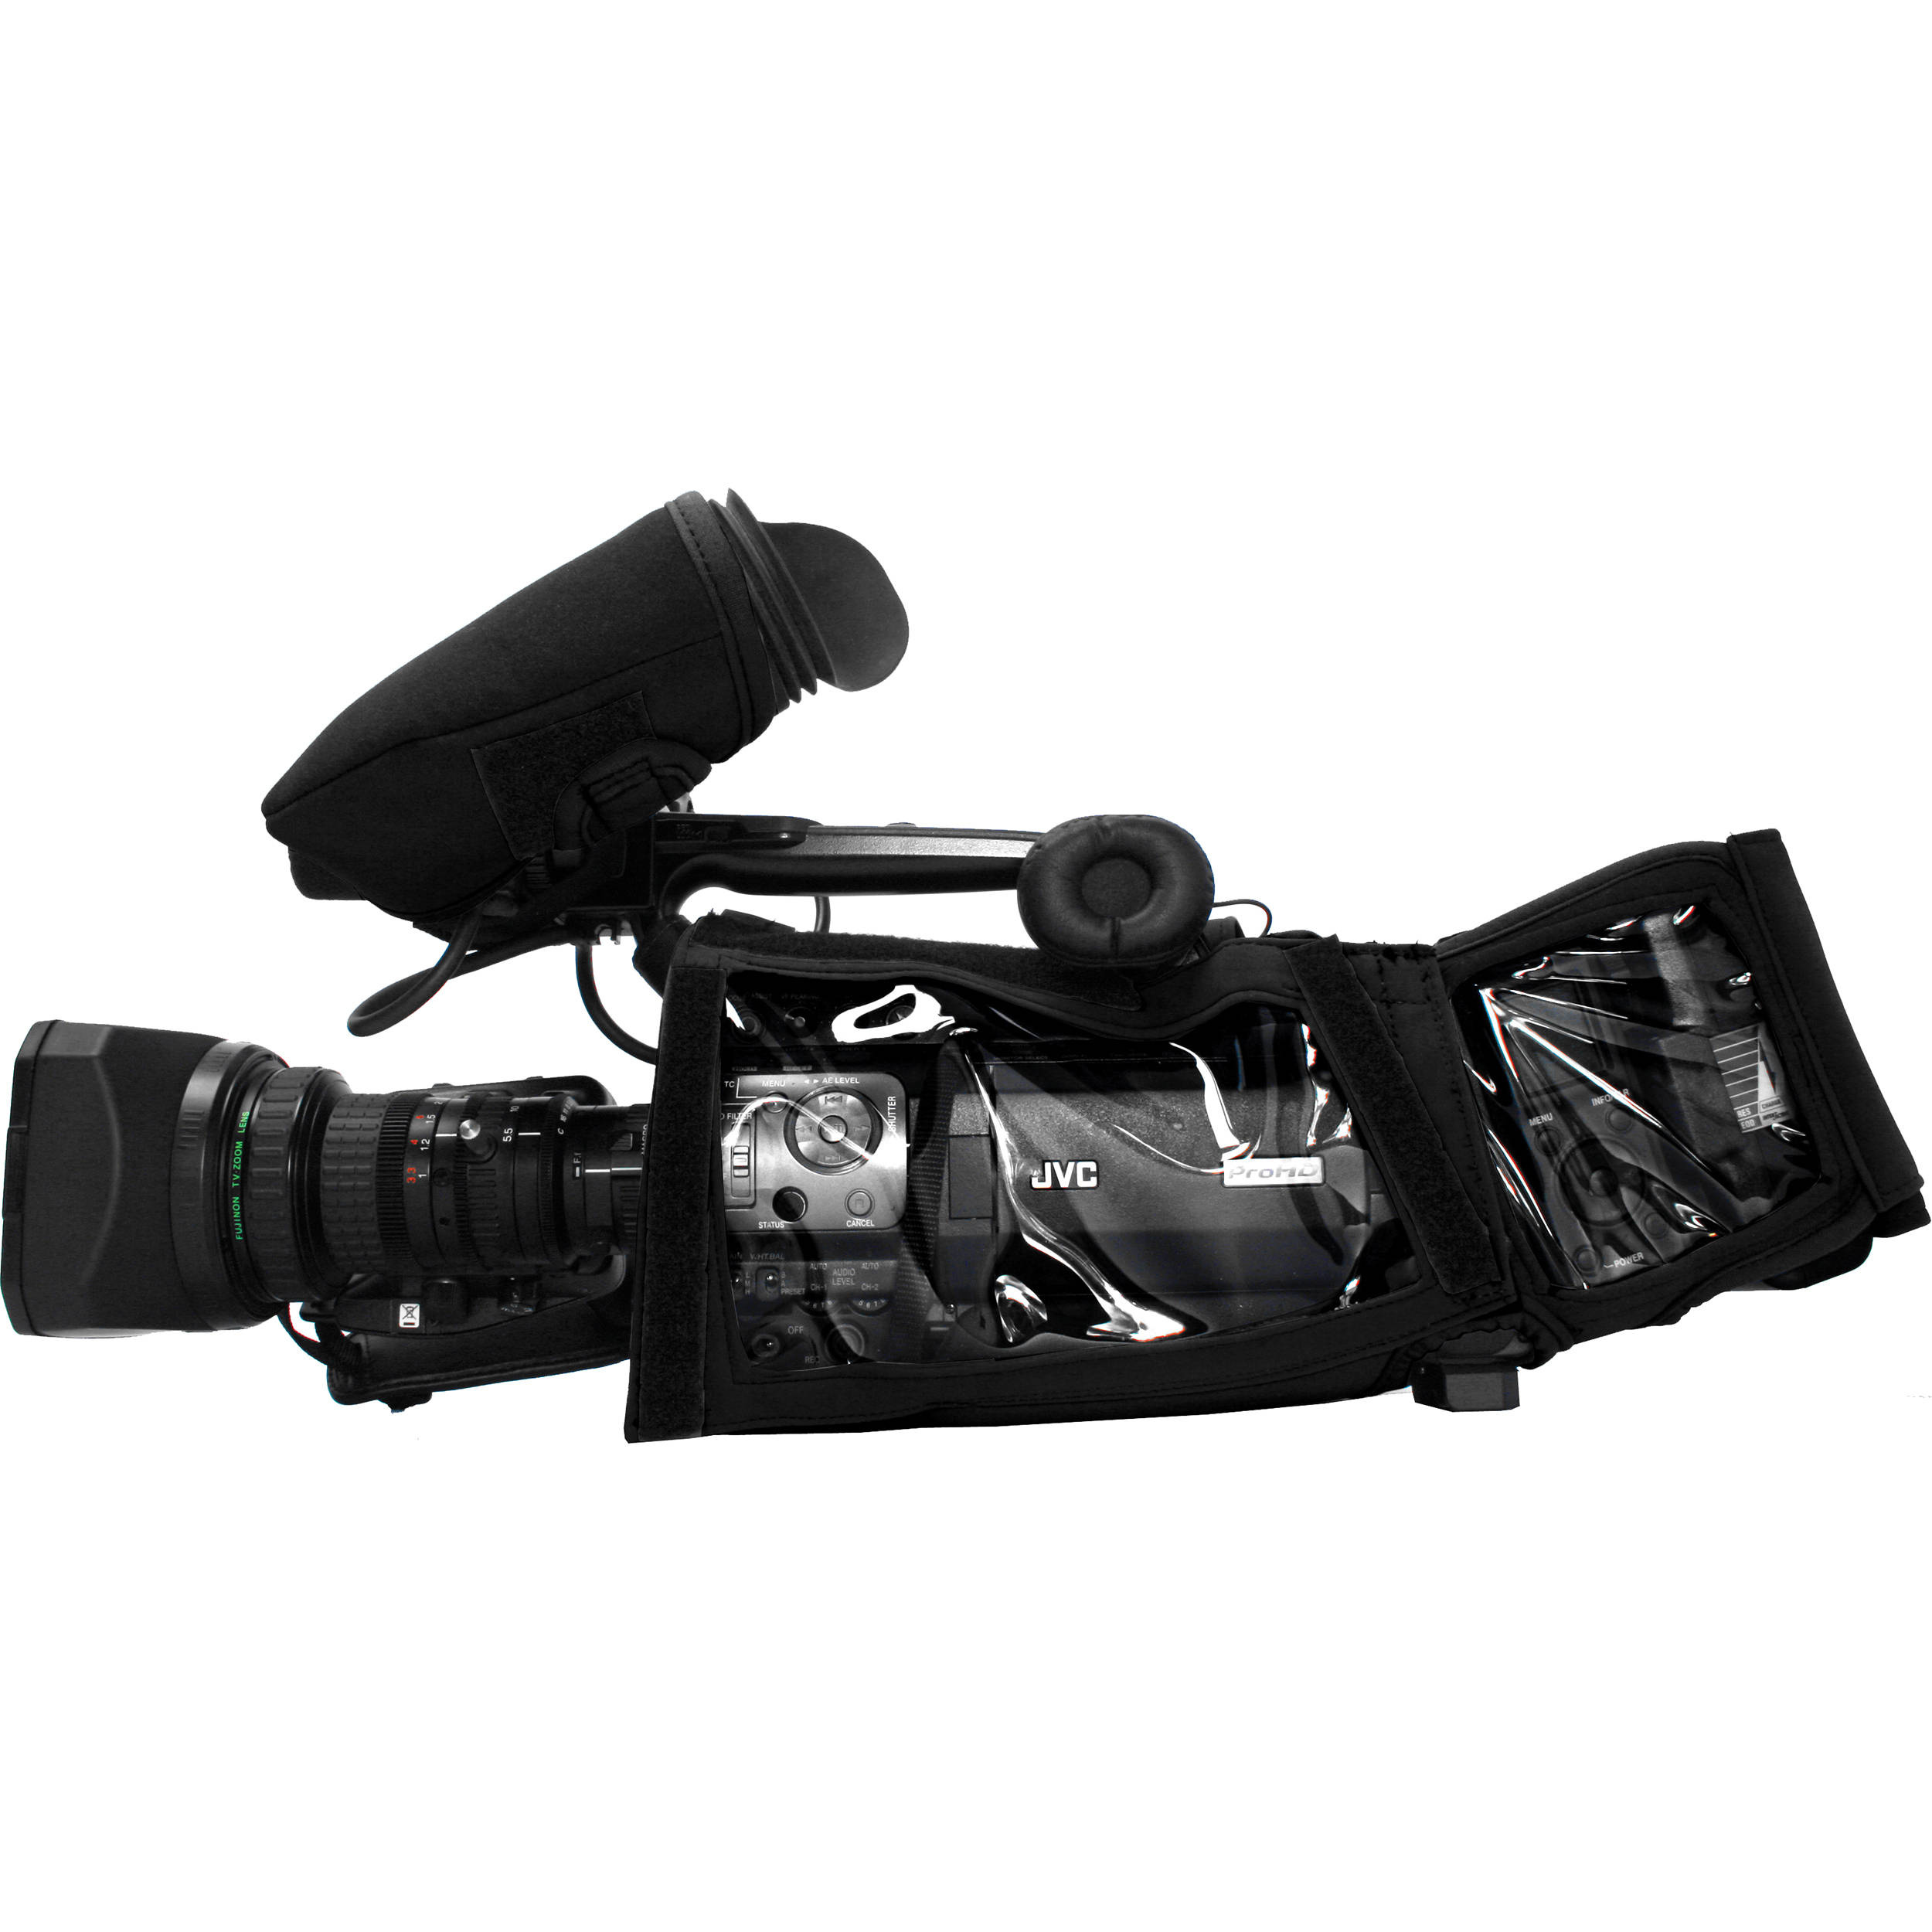 Camera Body Armor for JVC GY-HM850 Camcorder (Black)